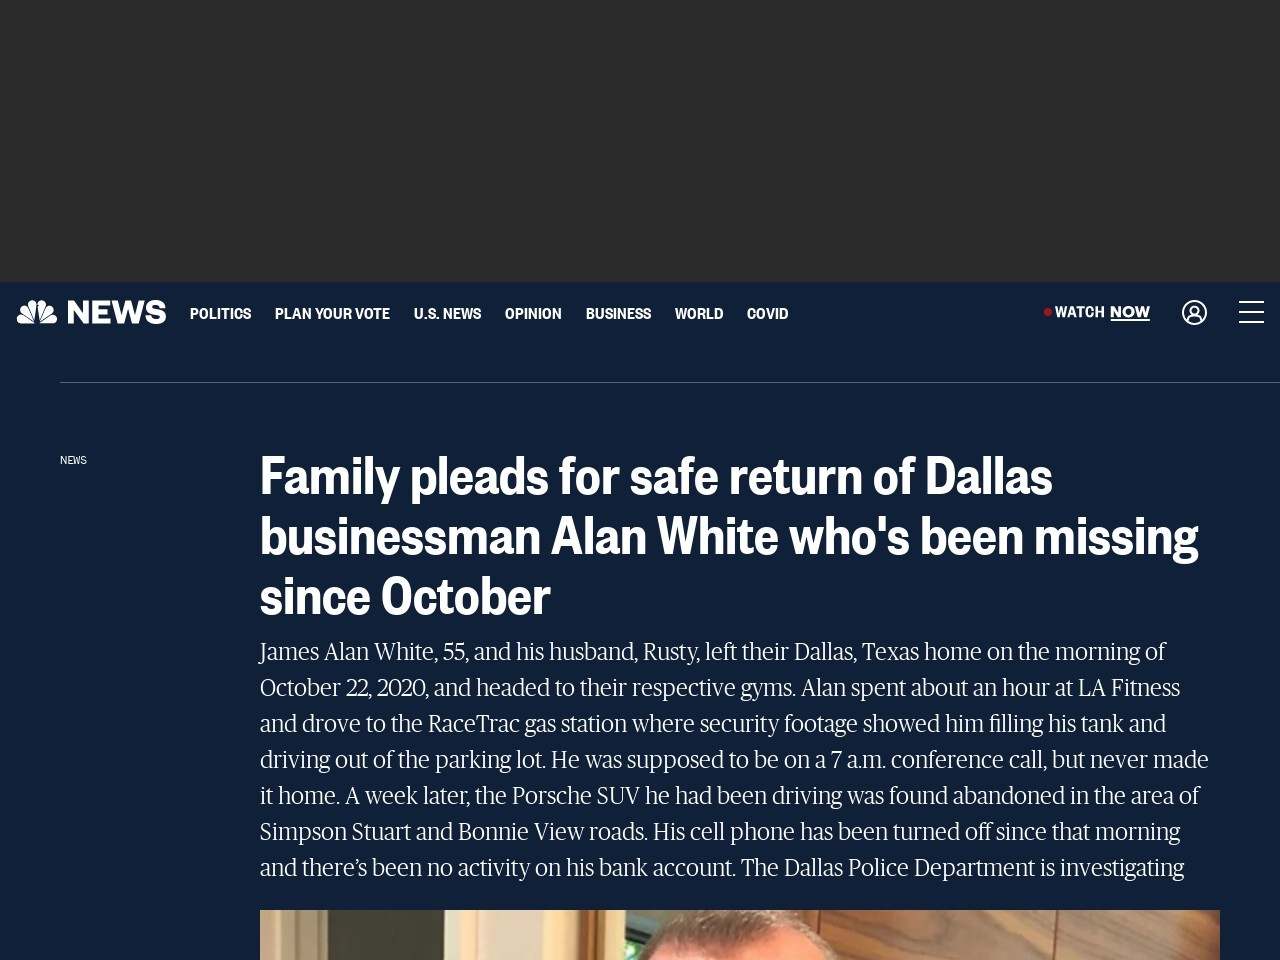 Family pleads for safe return of Dallas businessman Alan White who's been missing since October